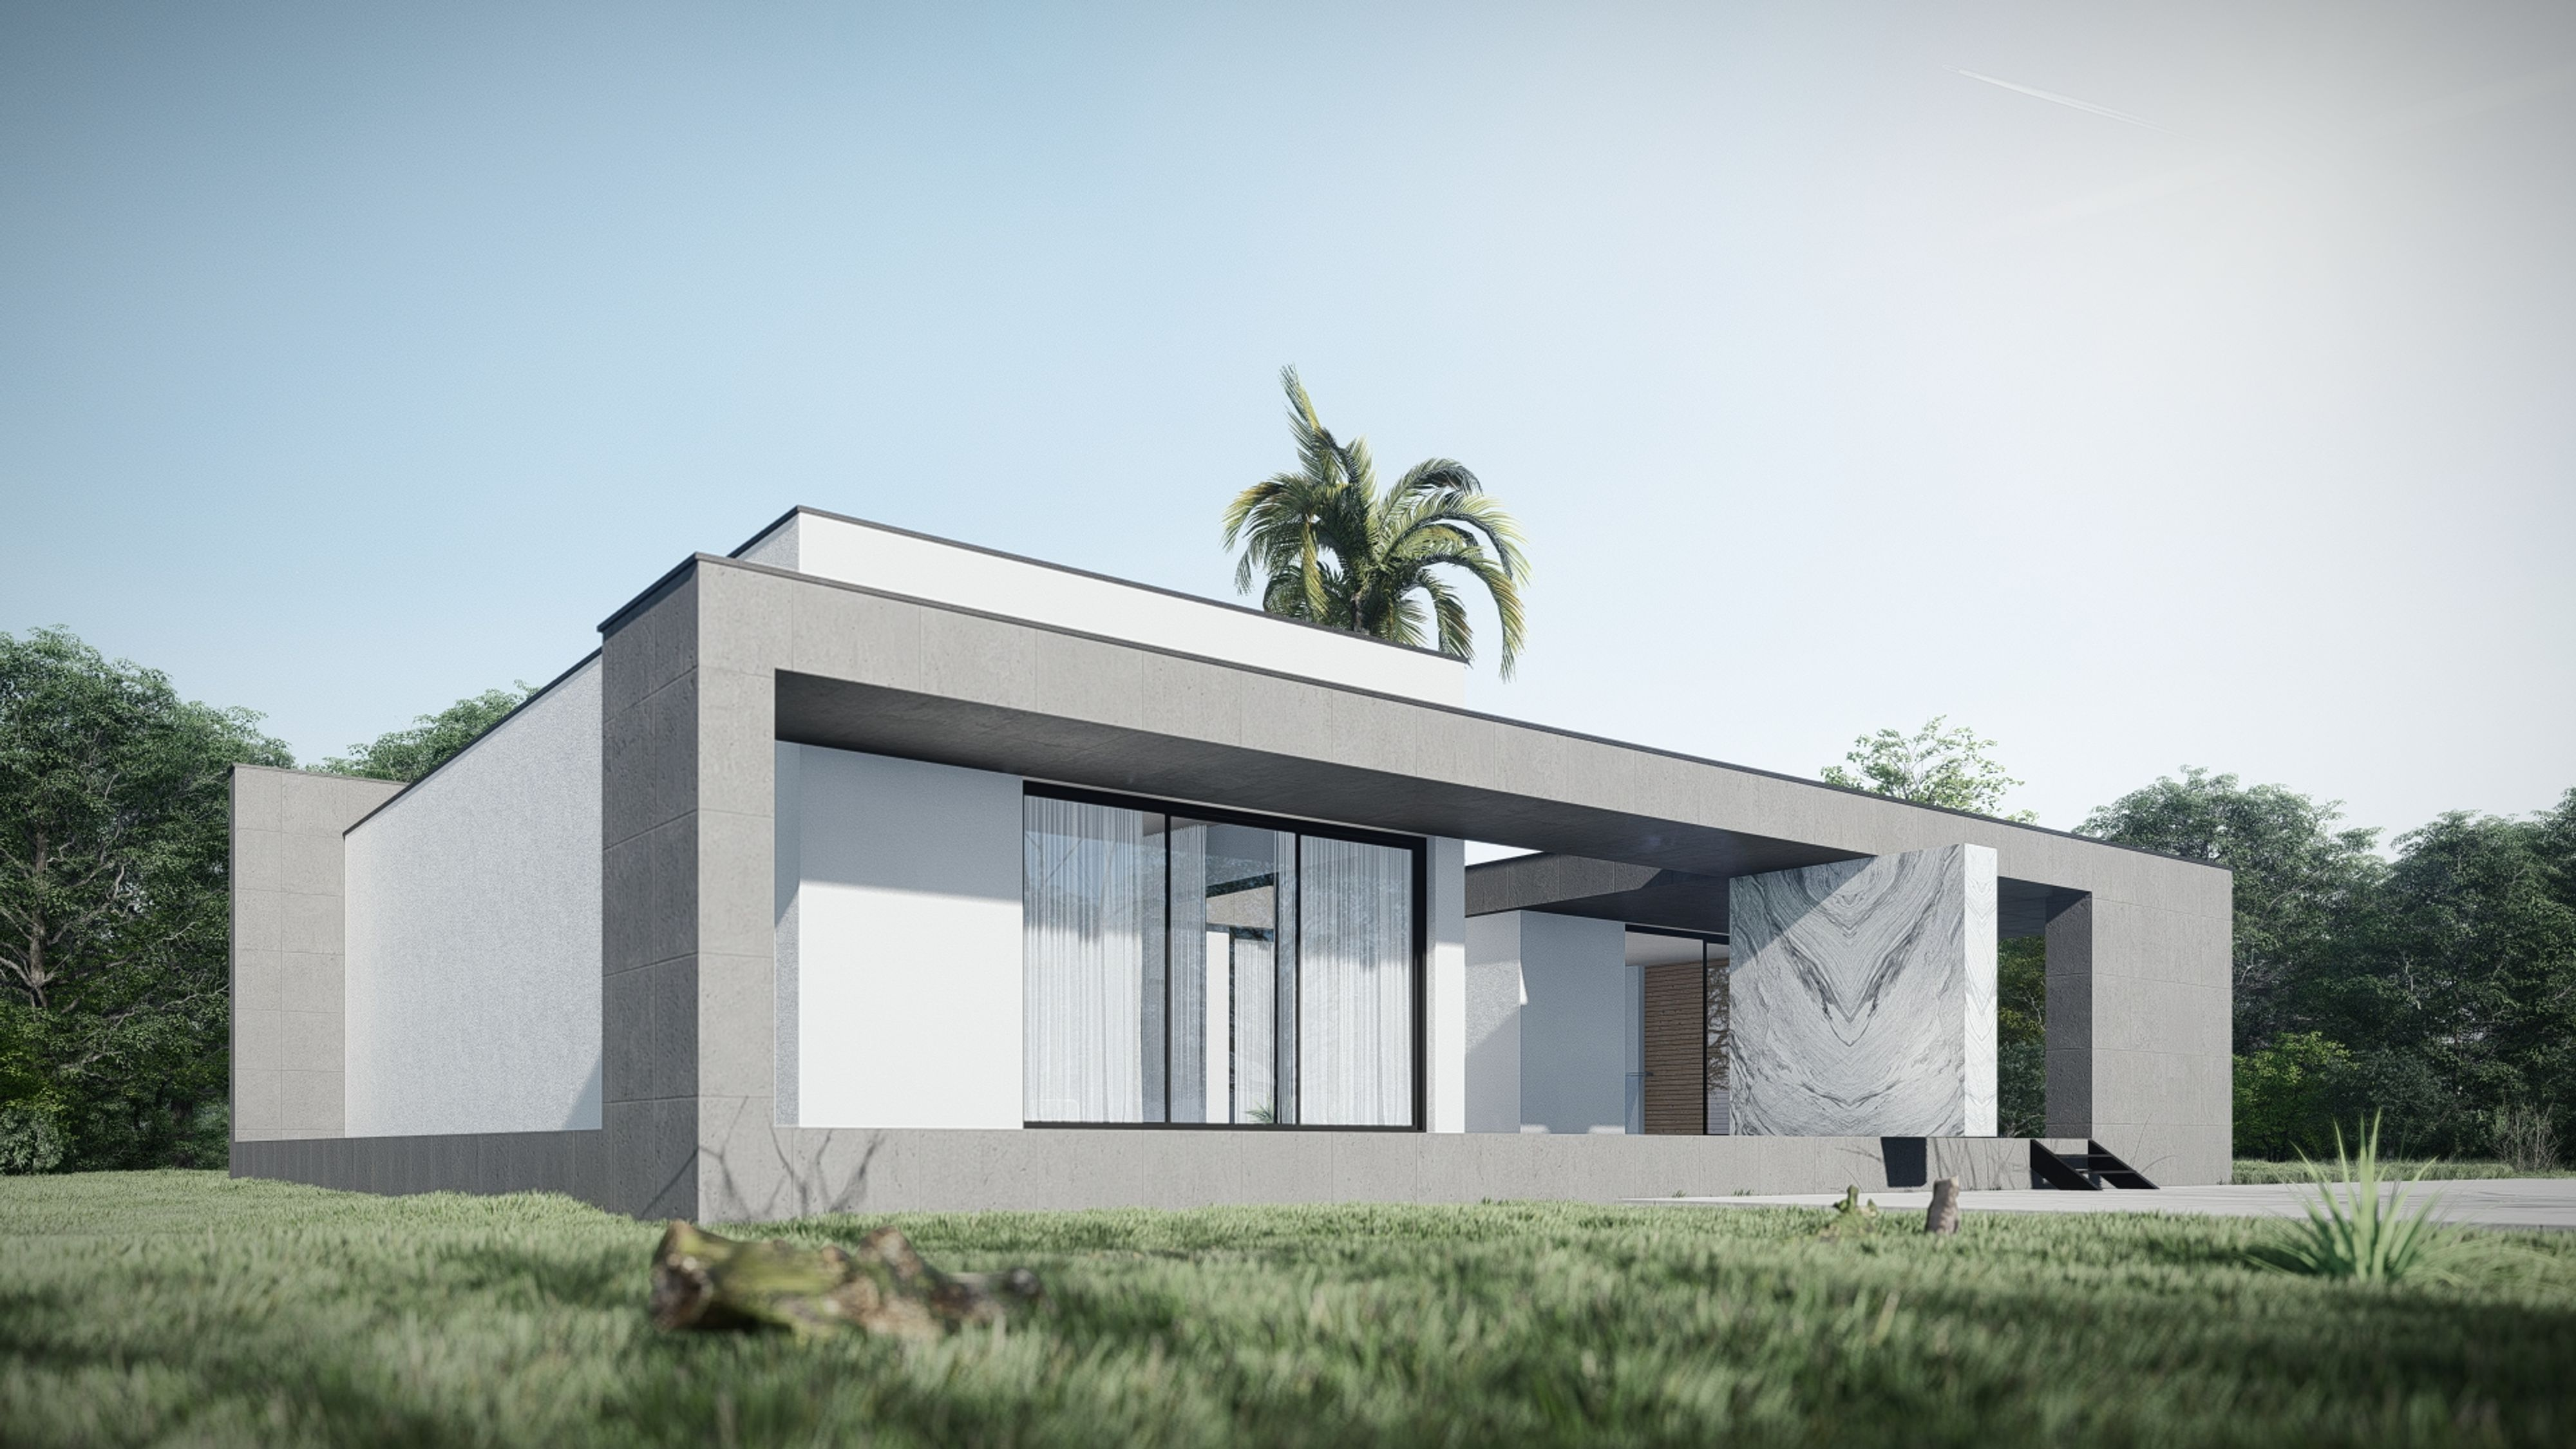 thumbnail of picture no. 19 of Shahan villa project, designed by Mohammad Reza Kohzadi